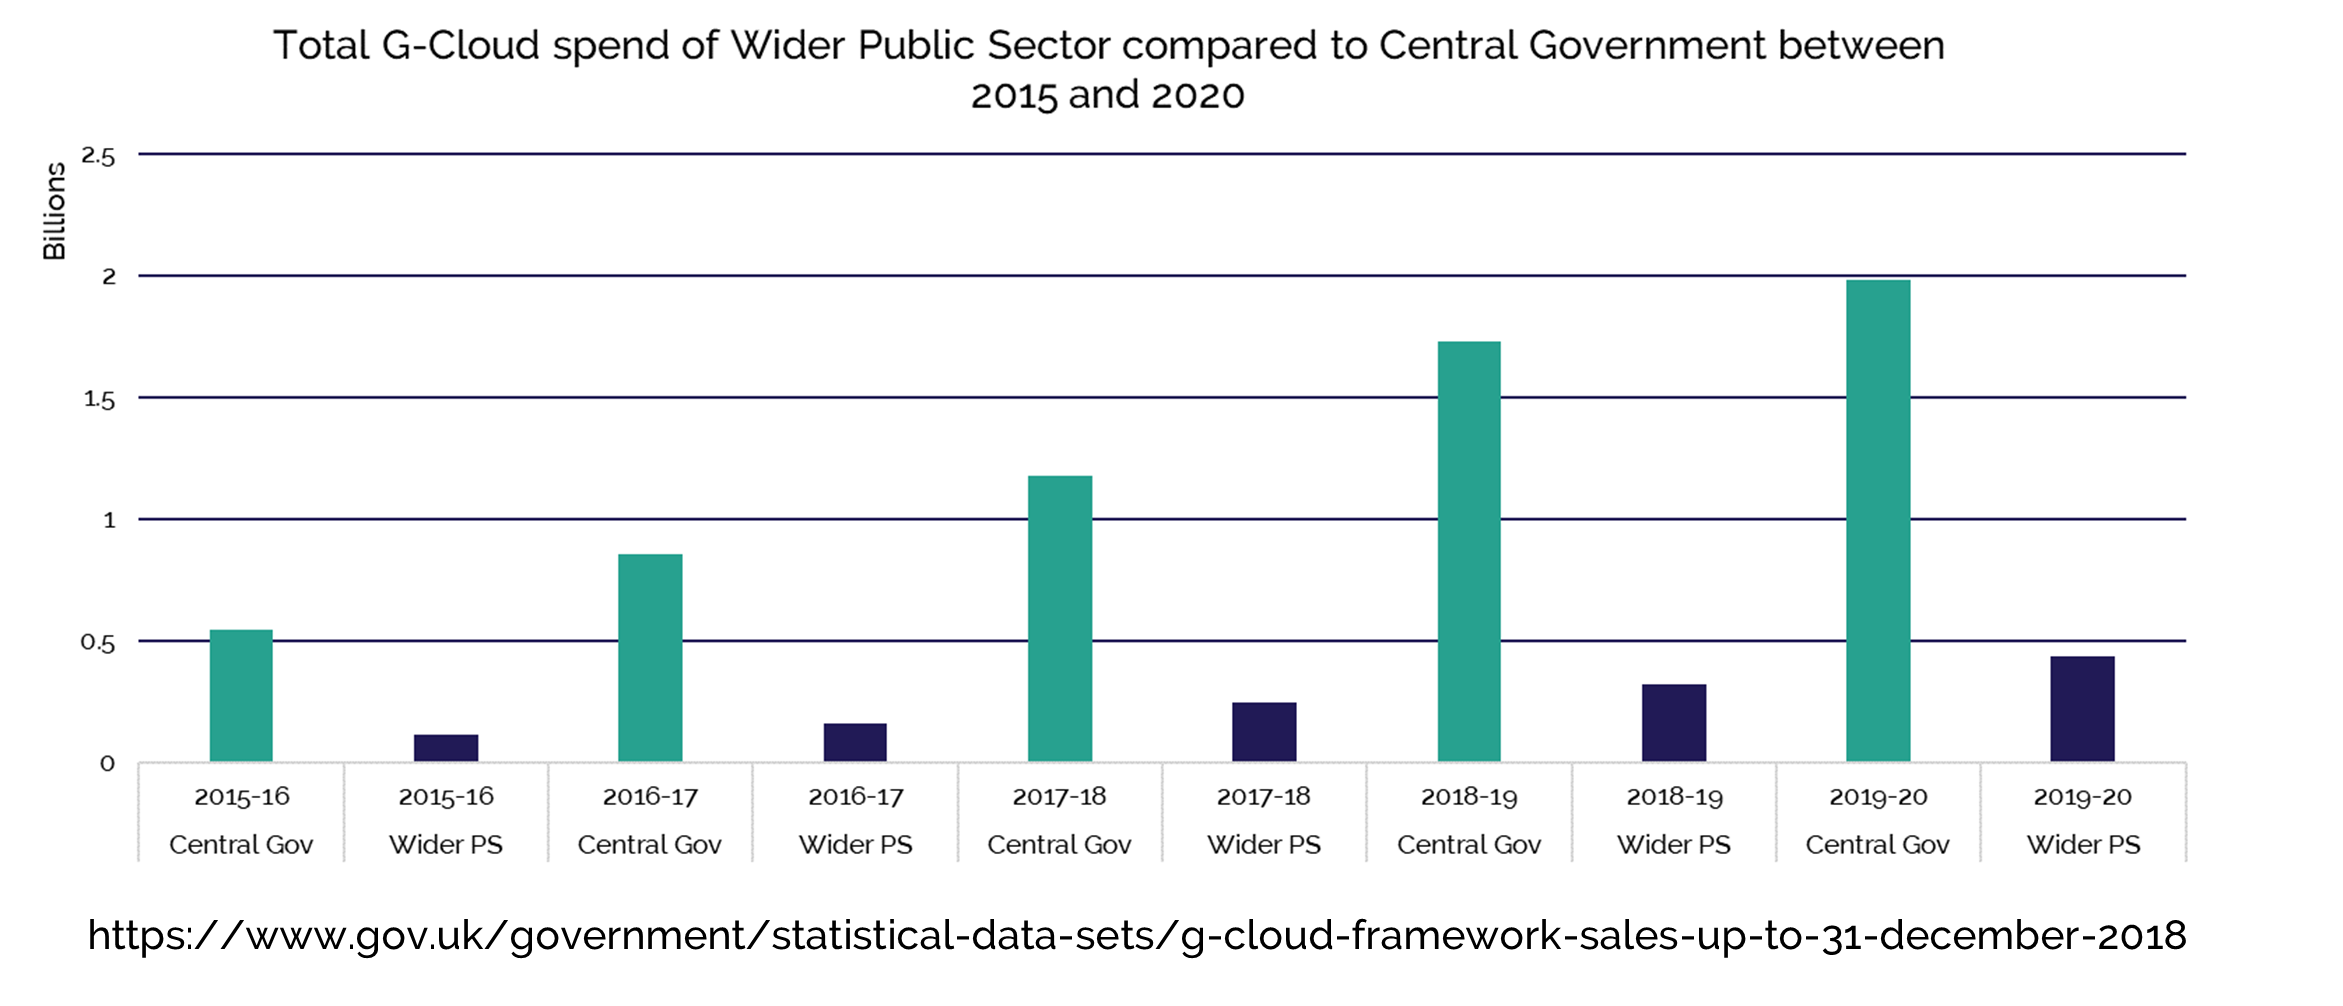 Total G-Cloud spend of wider public sector compared to central government between 2015 and 2020.